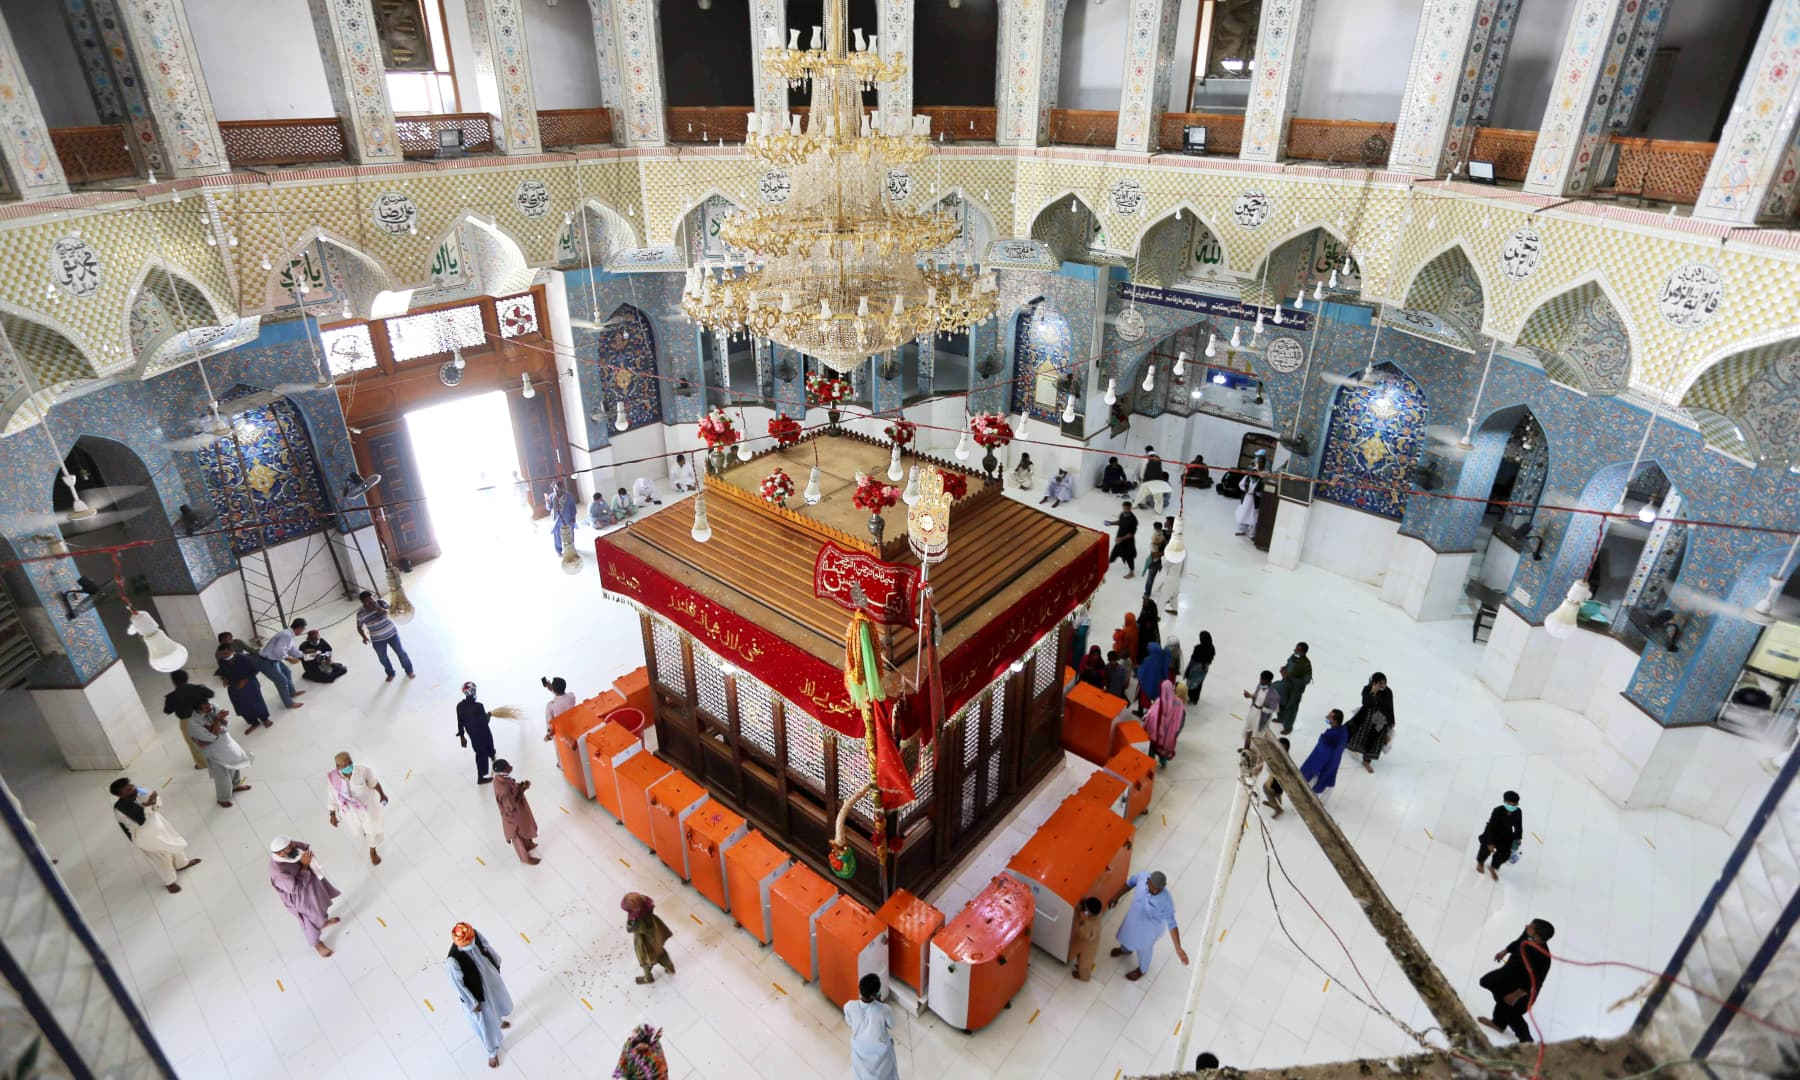 A view of the inner sanctum of Lal Shahbaz Qalandar's shrine after it was reopened on Aug 17.